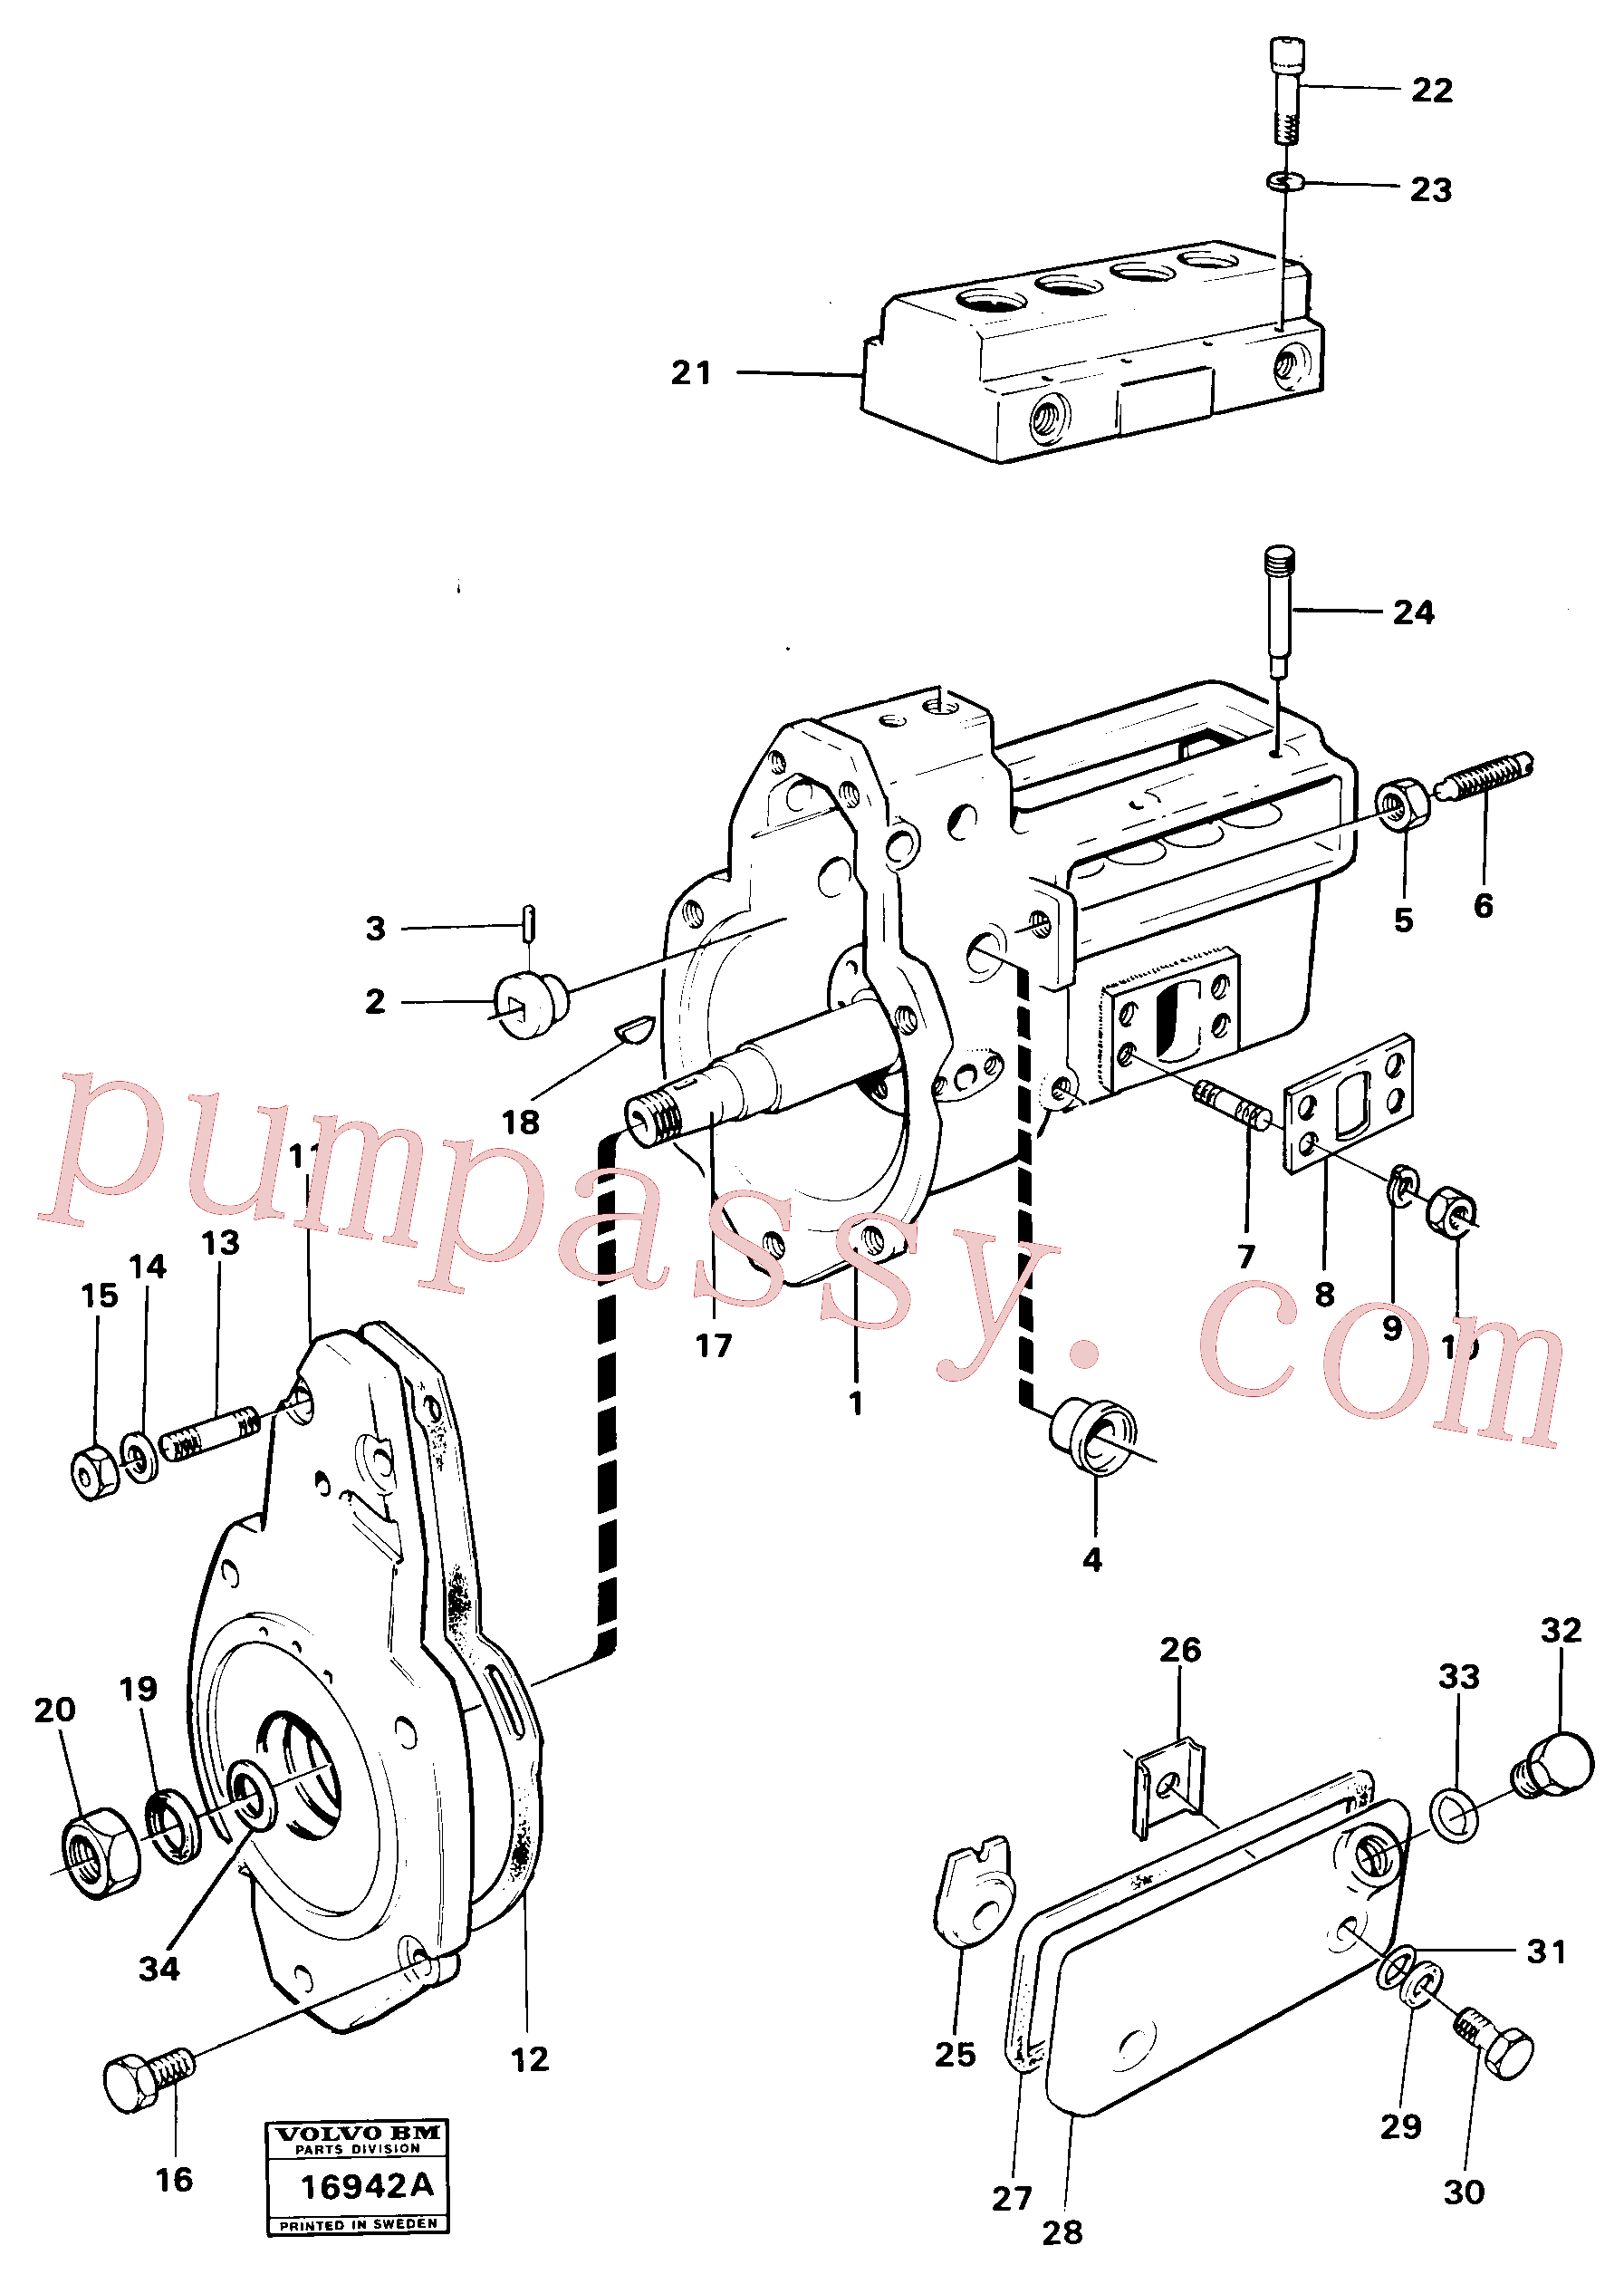 VOE13956545 for Volvo Fuel injection pump cmpl Prod Nr 16303,16304, Fuel injection pump cmpl Mo 52512-59882(16942A assembly)